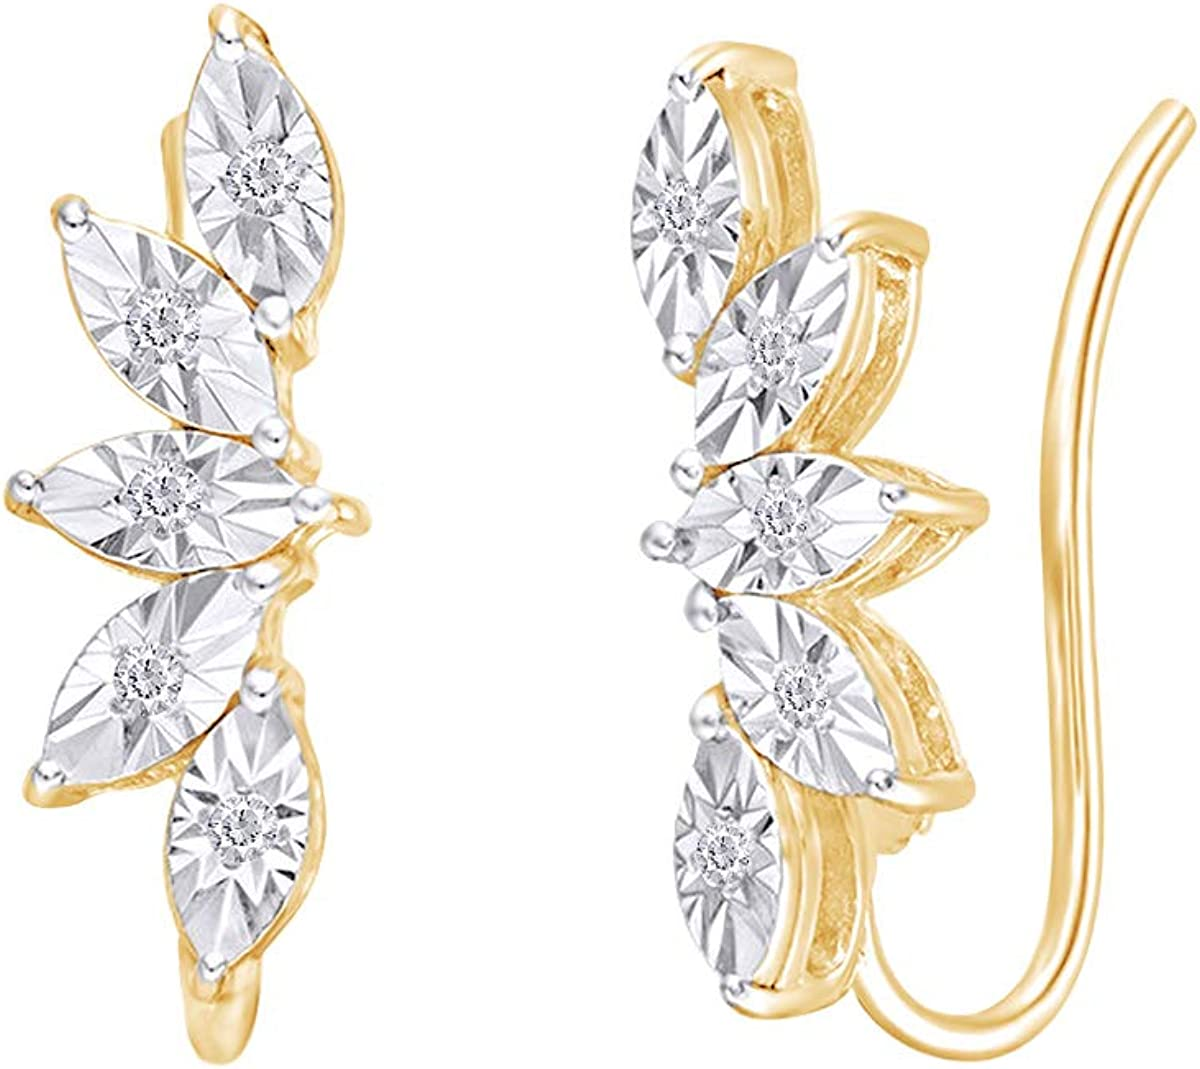 Samaira Jewelry Miracle Set Natural Diamond Leaf Fan Crawler Earrings in 14K Gold Plated 925 Sterling Silver For Women 0.04 Cttw, I-J Color, I2-I3 Clarity